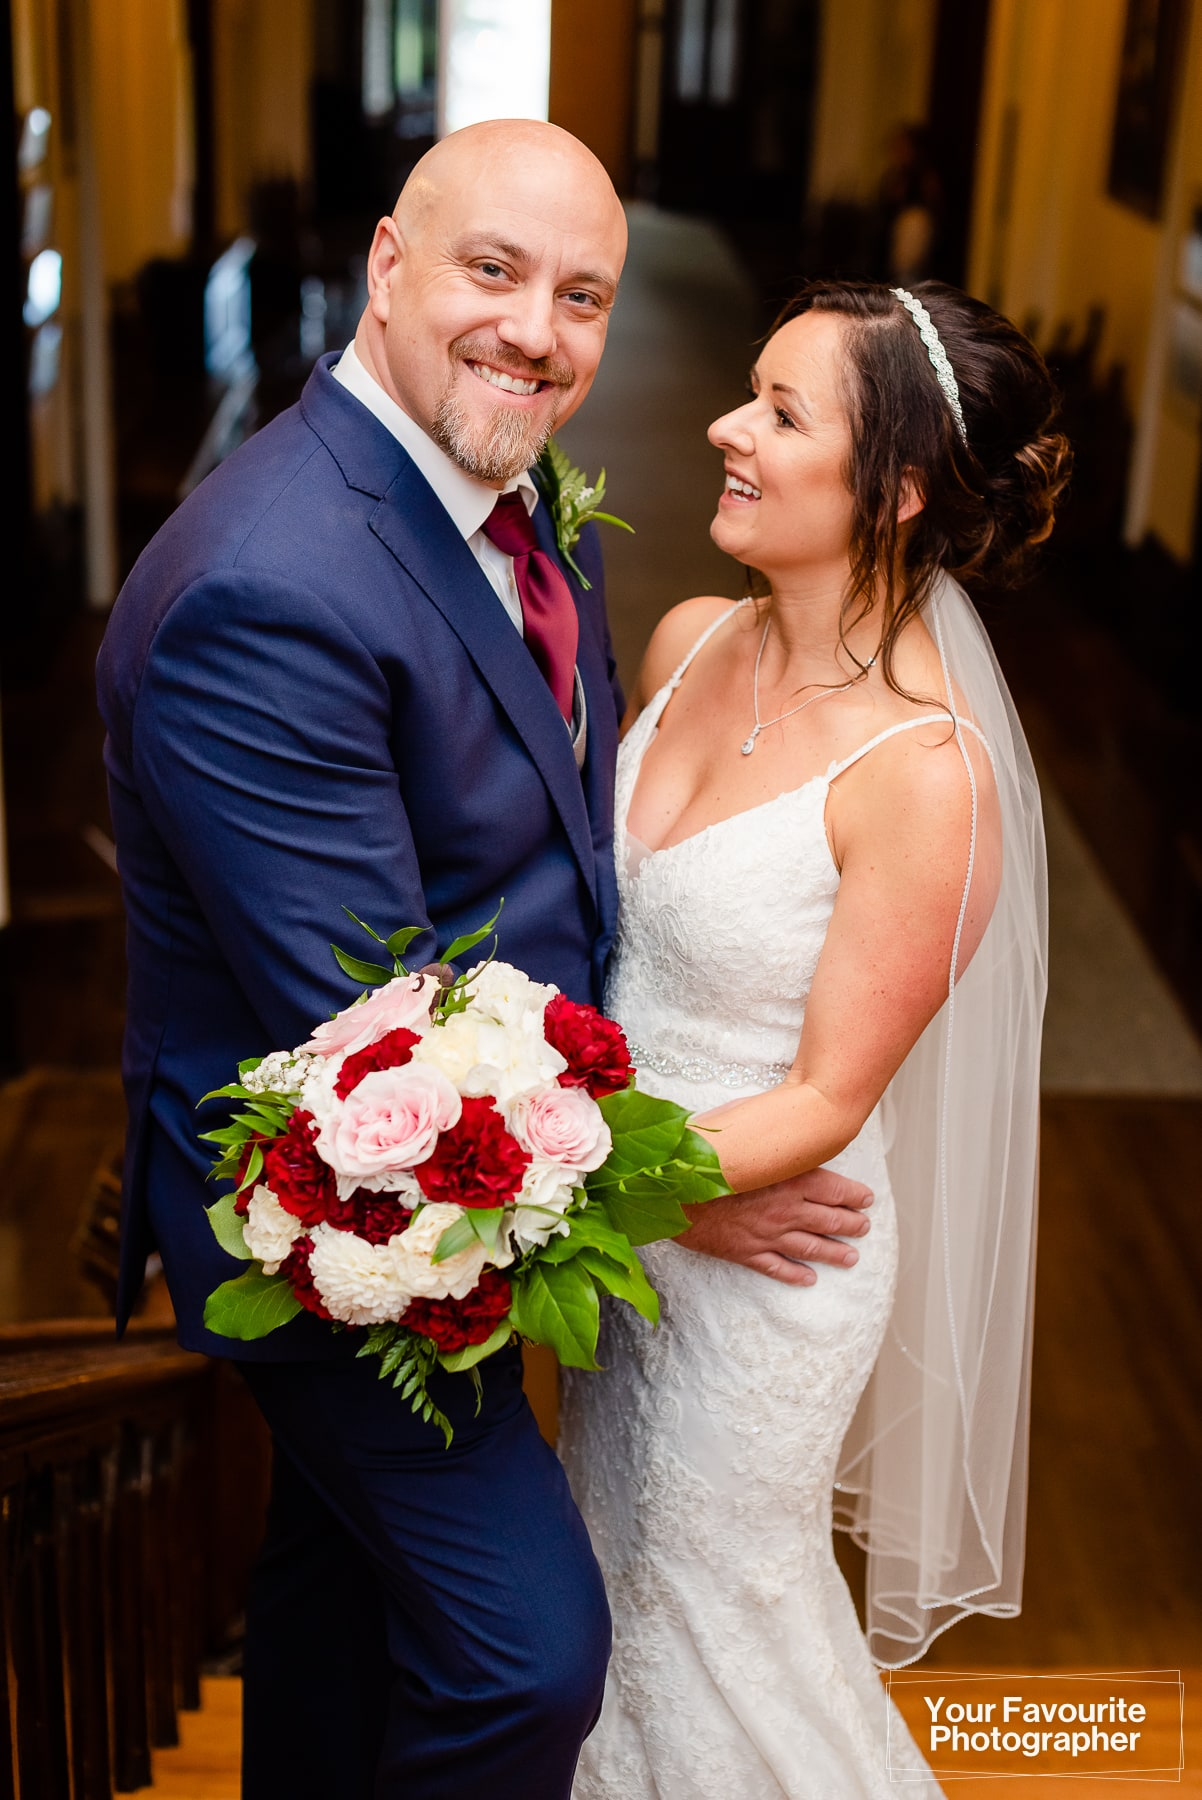 Trafalgar Castle School Wedding | Brock Street Brewery Wedding Reception Photos